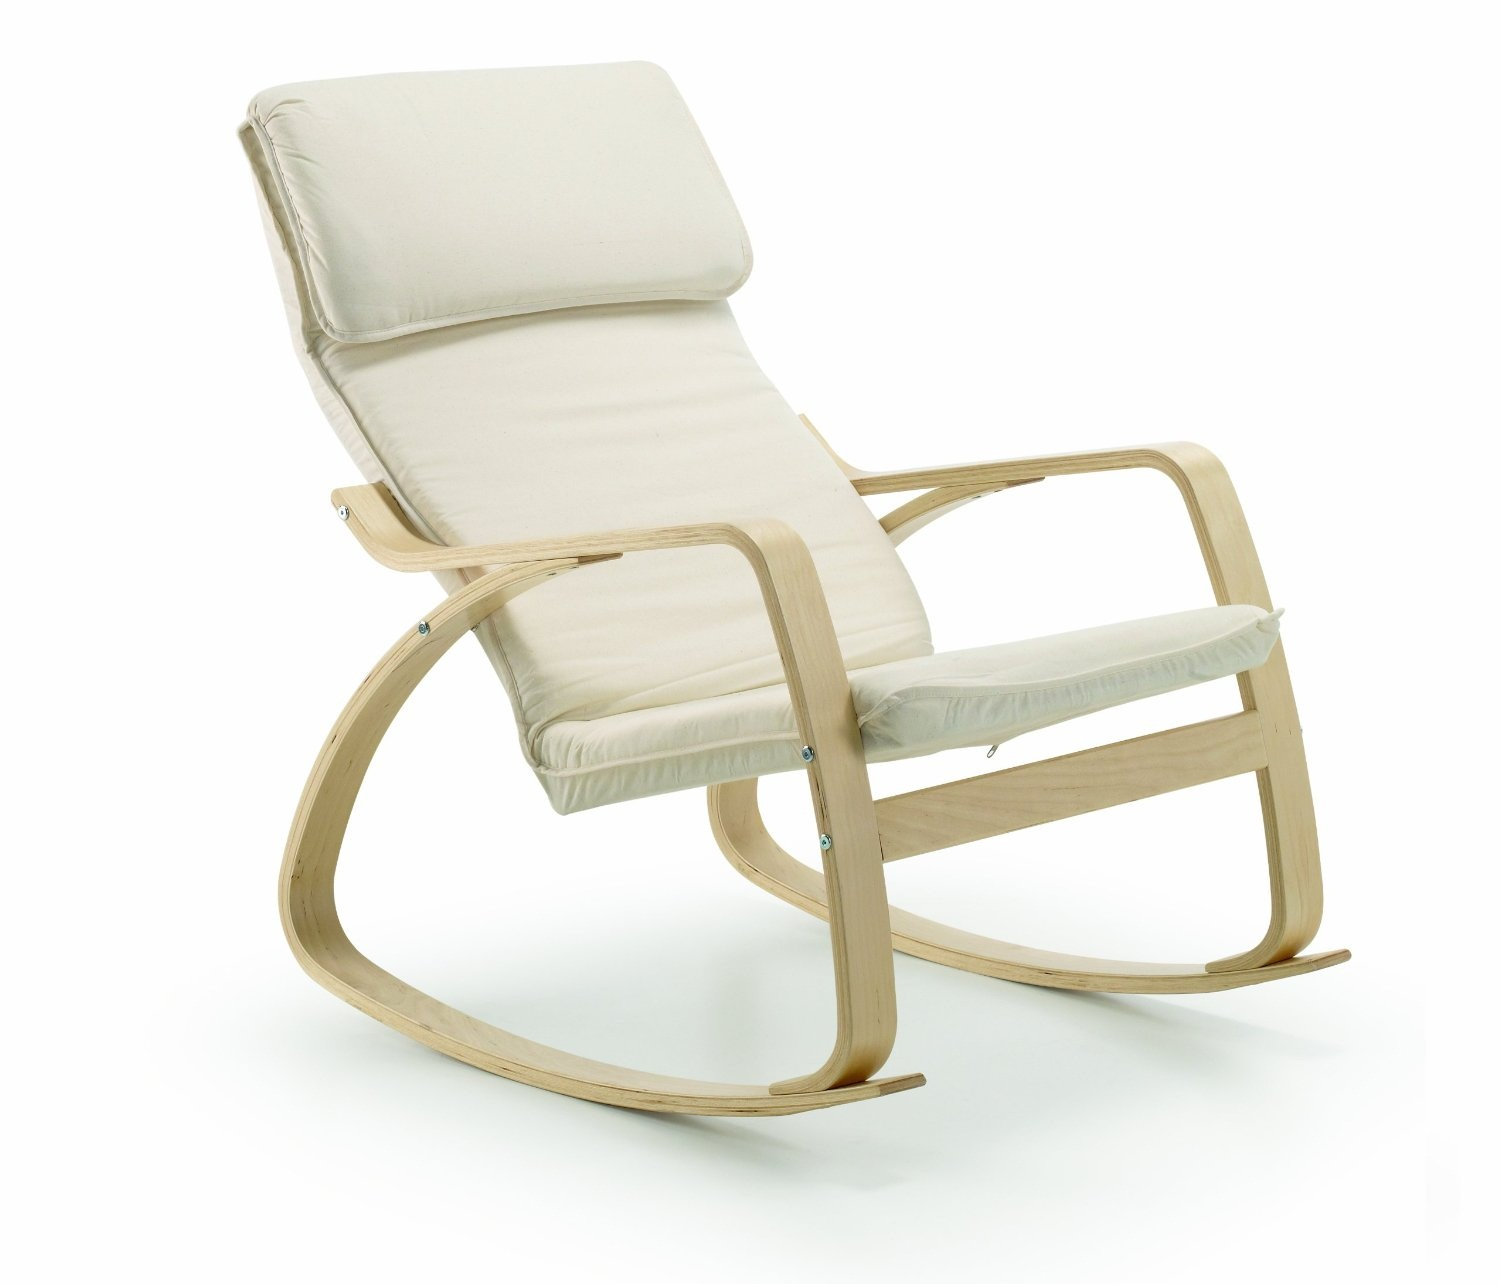 Rocking chair en teck